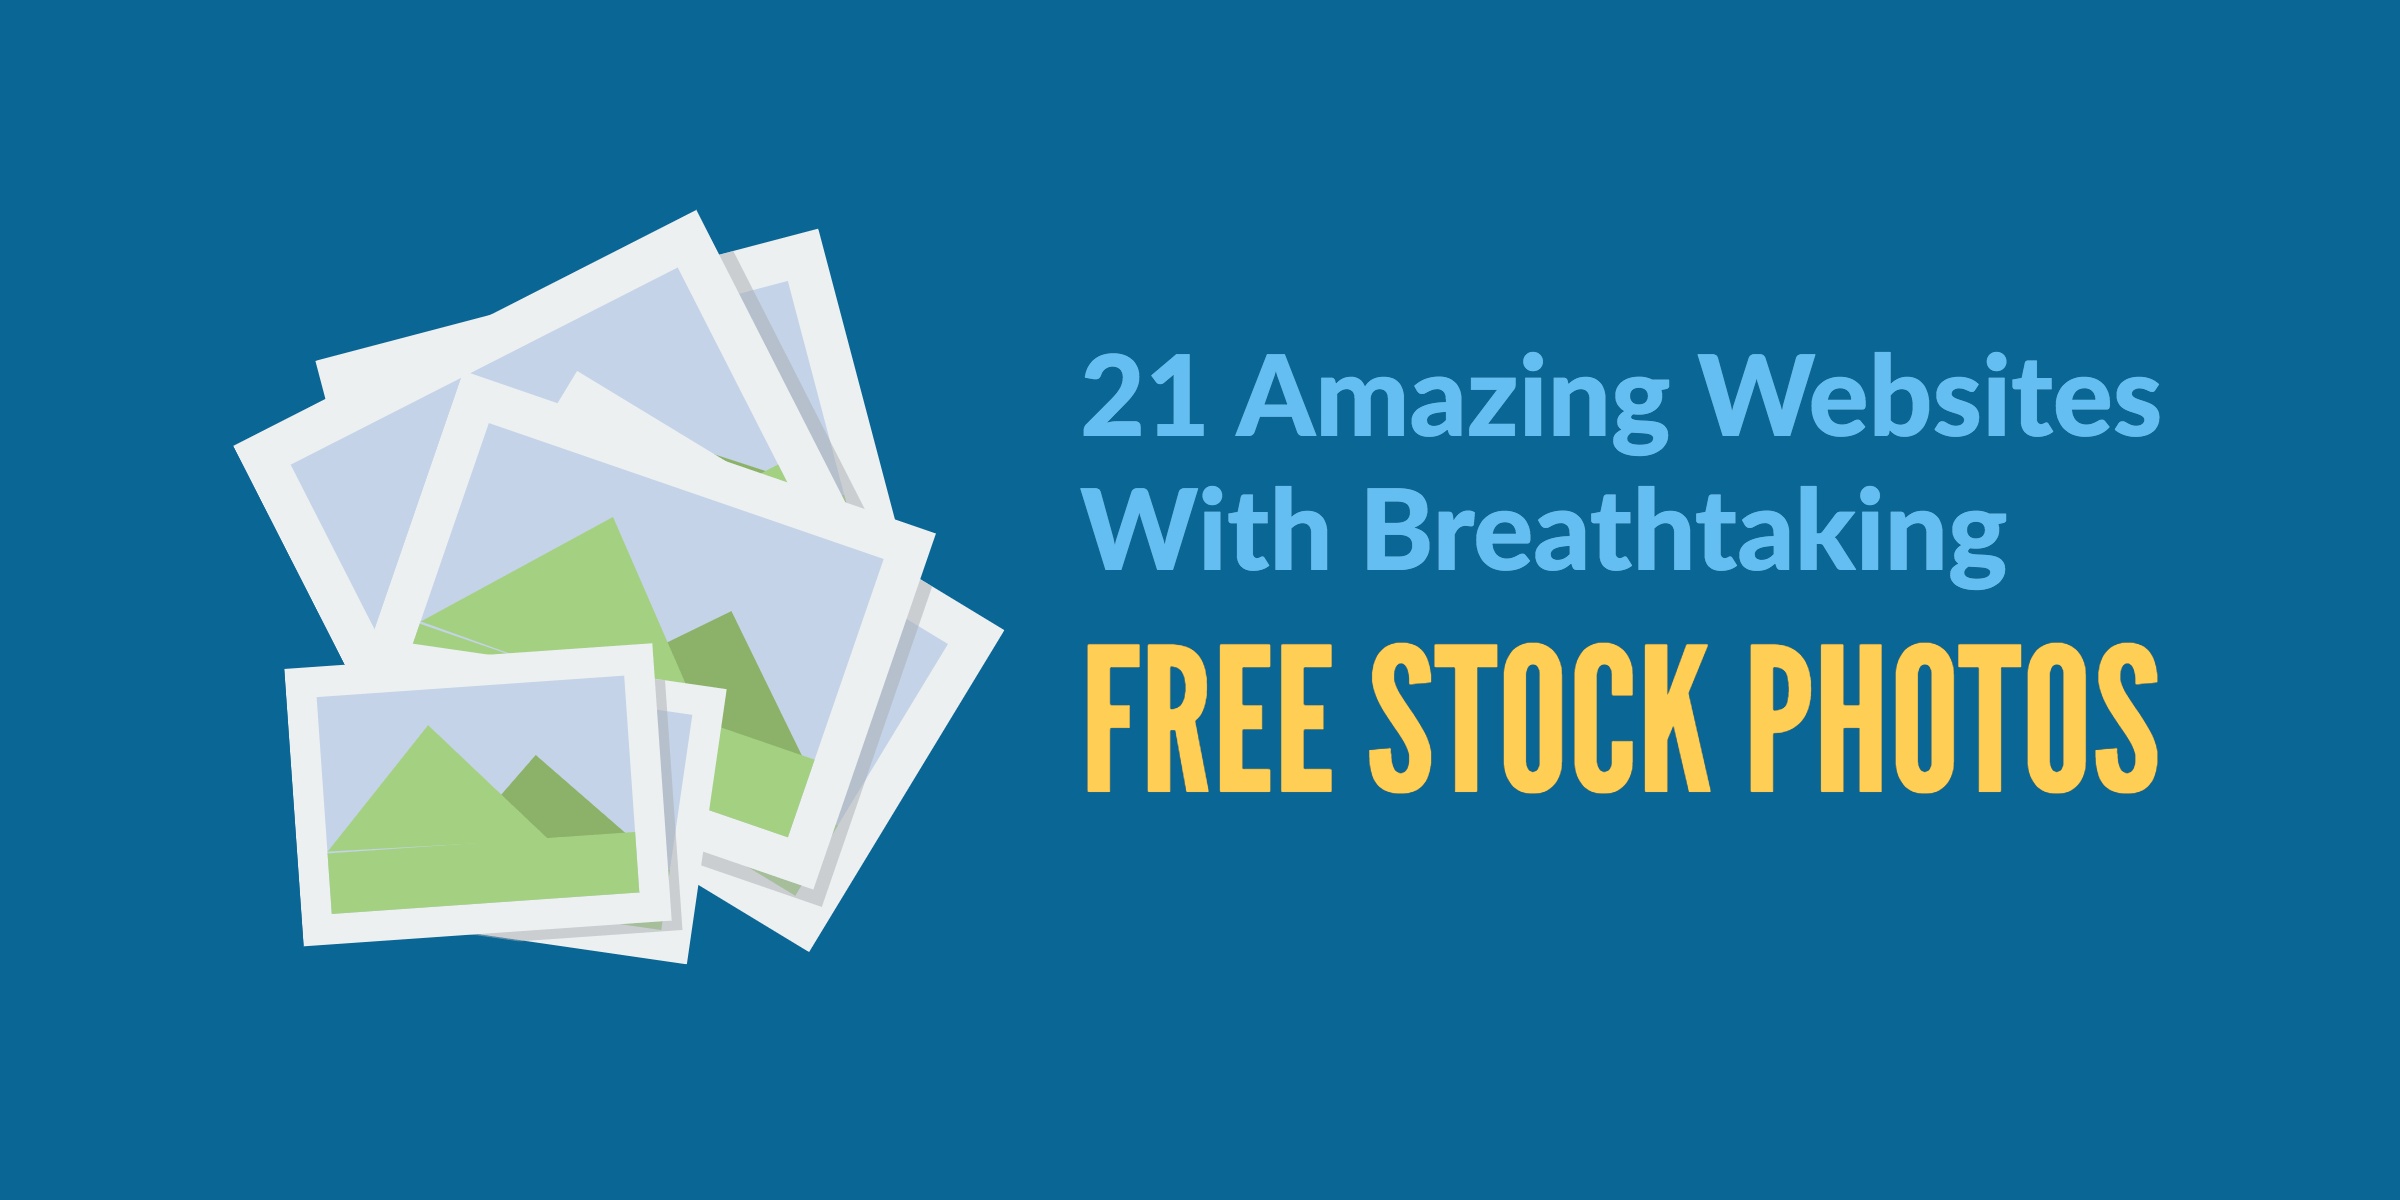 21 Amazing Sites With Breathtaking Free Stock Photos